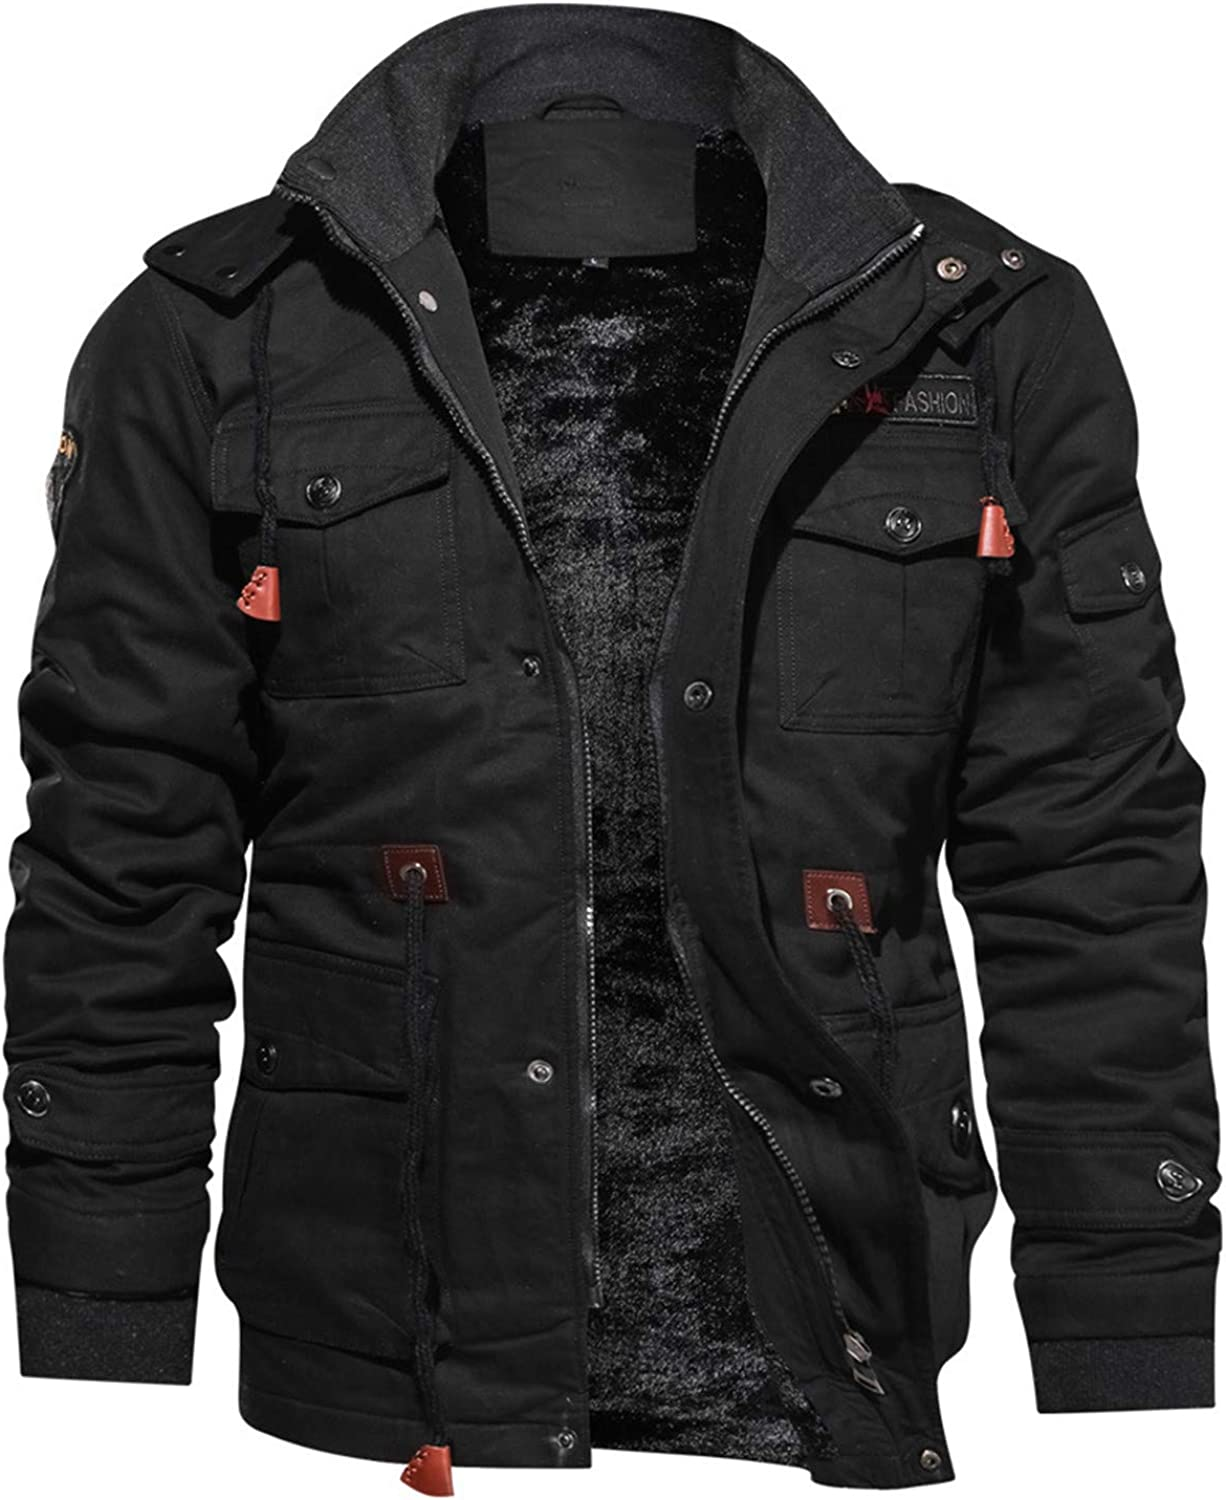 Soluo Men's Winter Fleece Lined Denim Jackets Warm Jeans Coat Outerwear with Removable Hood (Black,3X-Large)